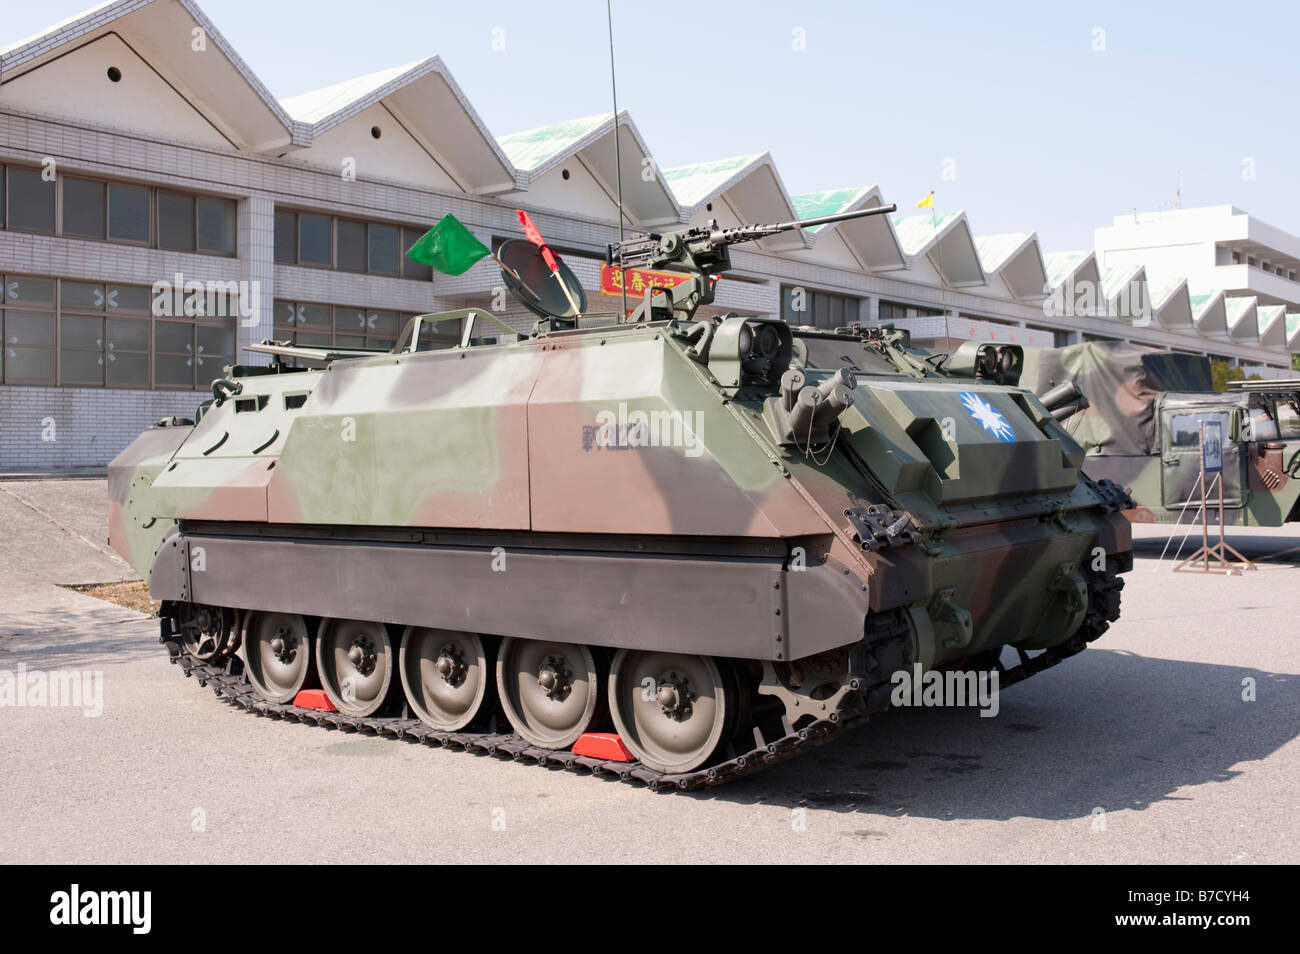 CM-21 APC, Armored Personnel Carrier, 58th Artillery Command, Taichung, Taiwan - Stock Image